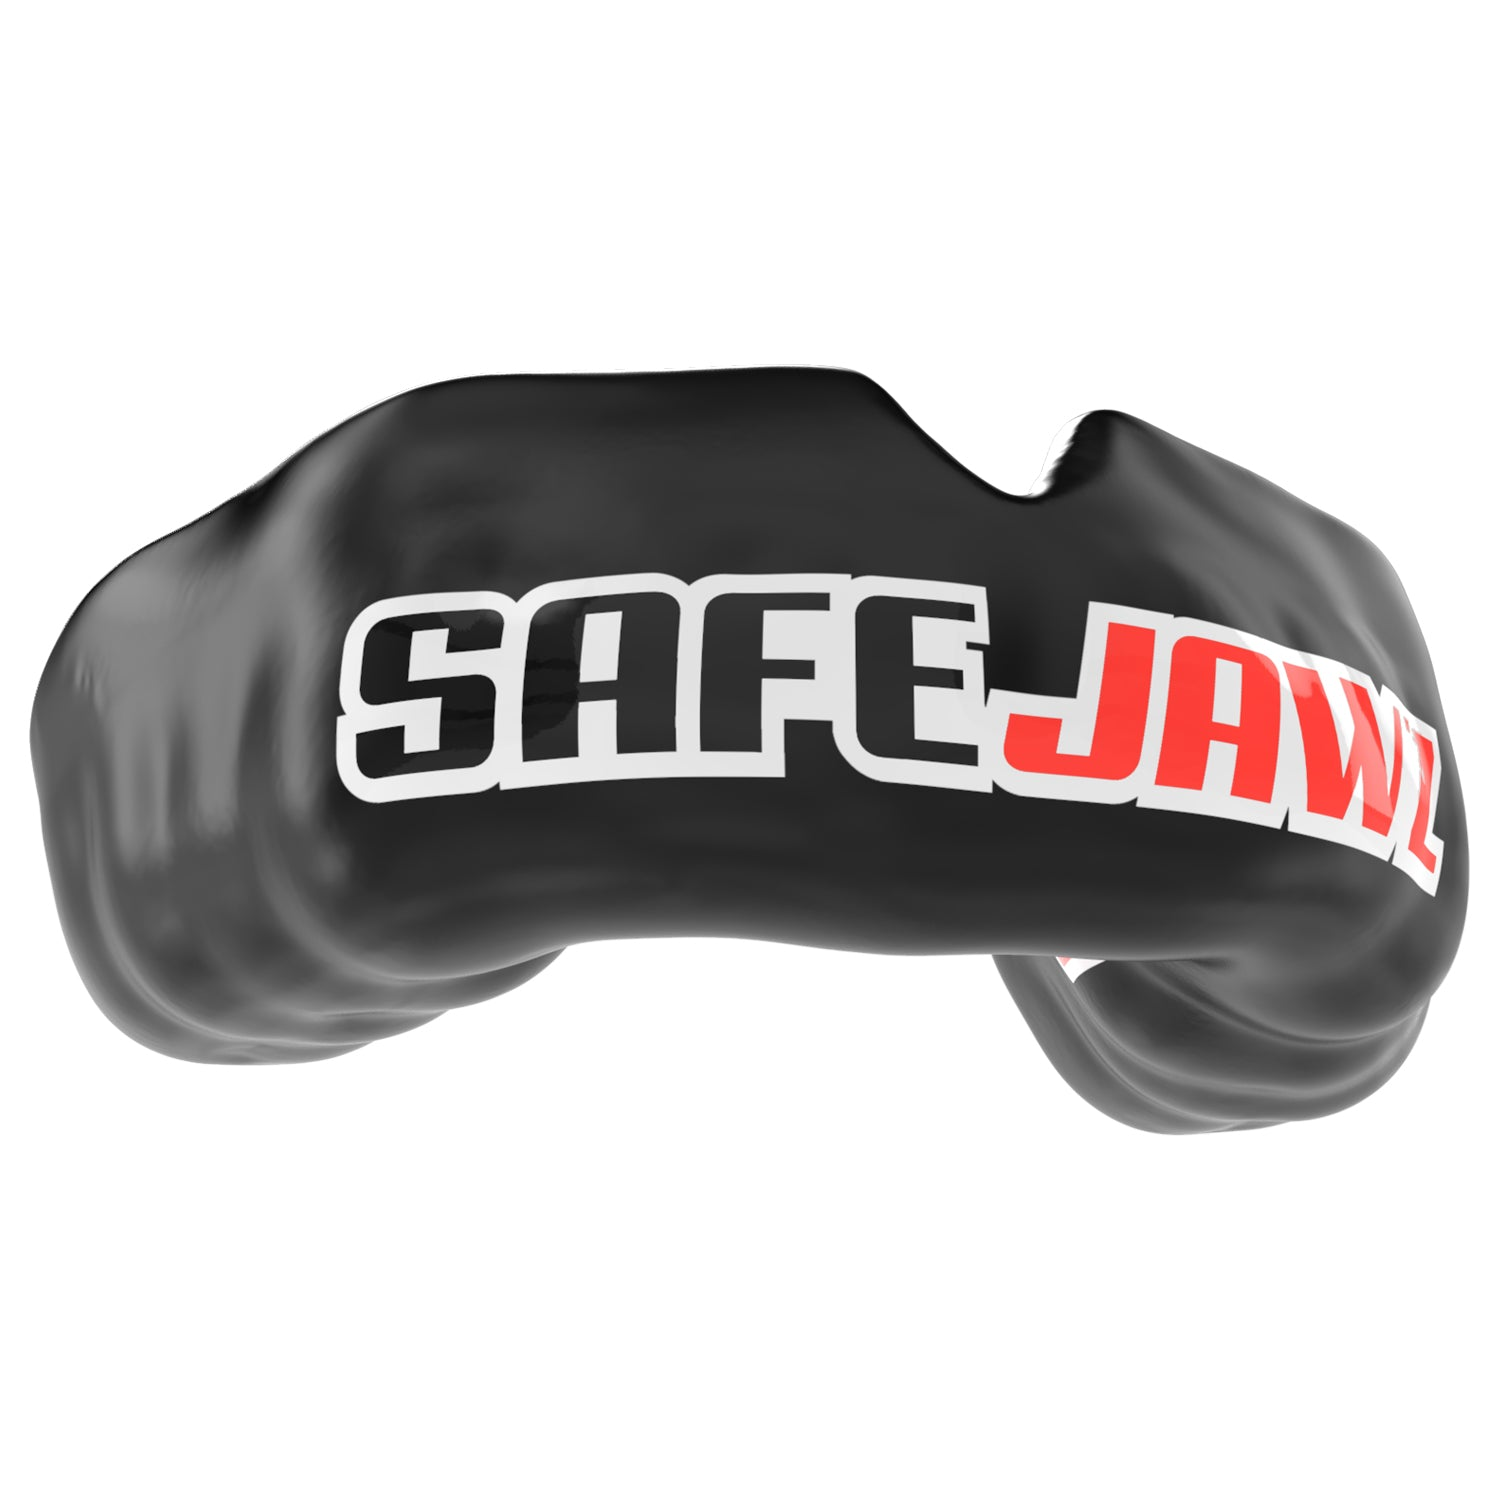 SAFEJAWZ® Popular Design Custom-fit Mouthguard - Black SAFEJAWZ®Logo